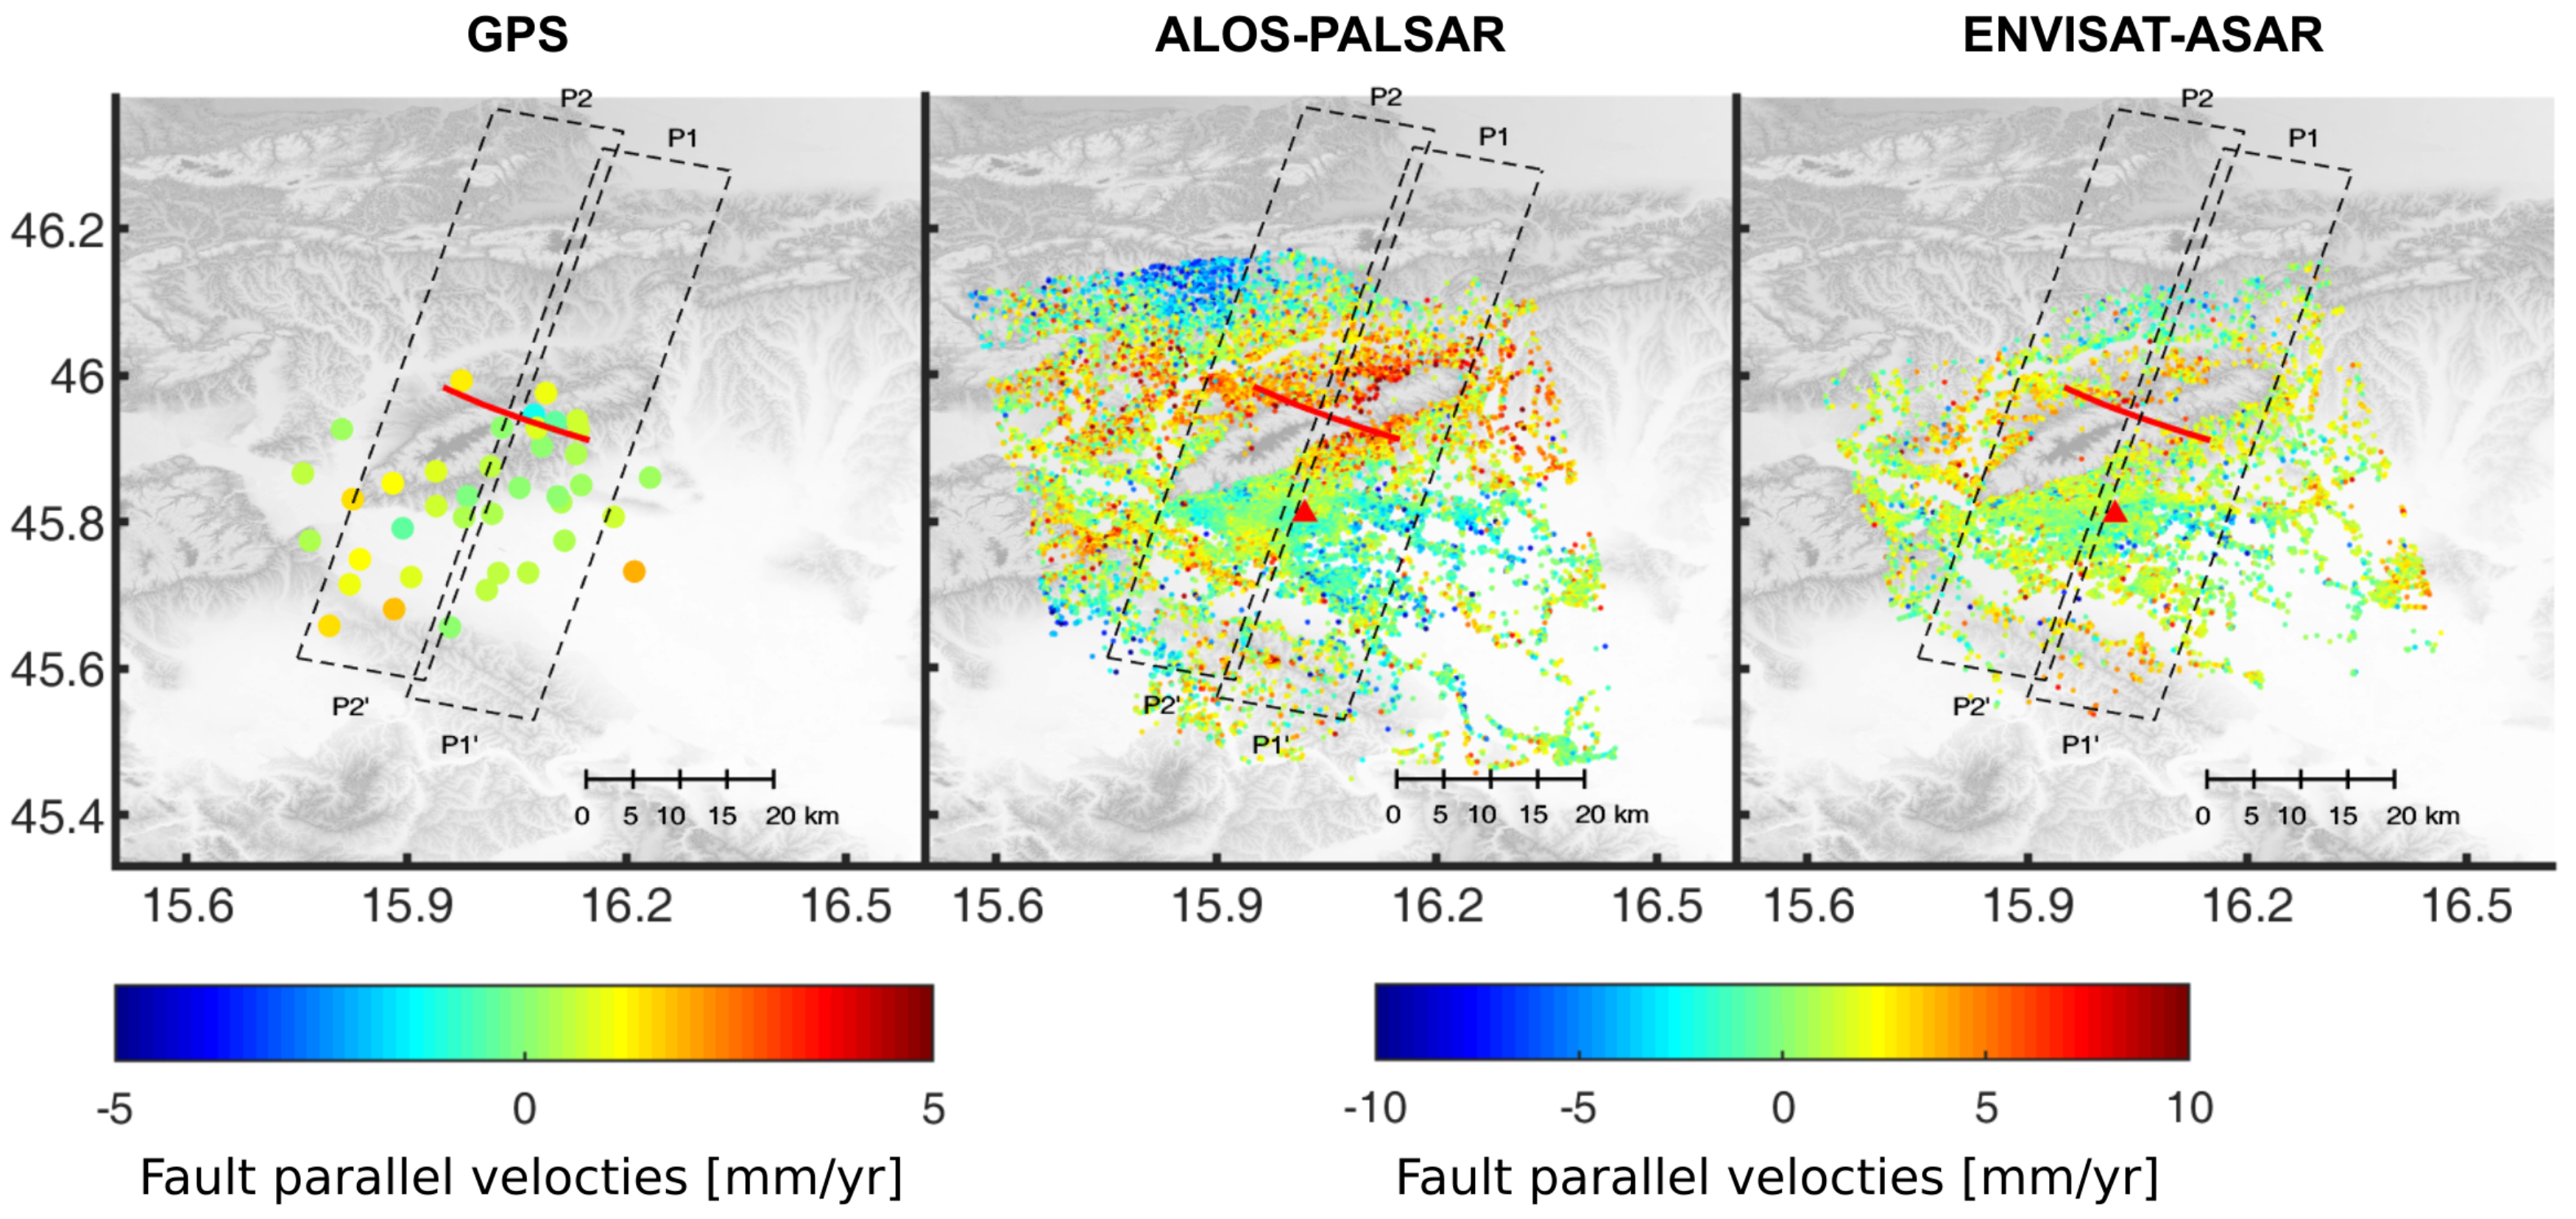 Sensors Free Full Text Surface Deformation Analysis Of The Wider Zagreb Area Croatia With Focus On The Kasina Fault Investigated With Small Baseline Insar Observations Html